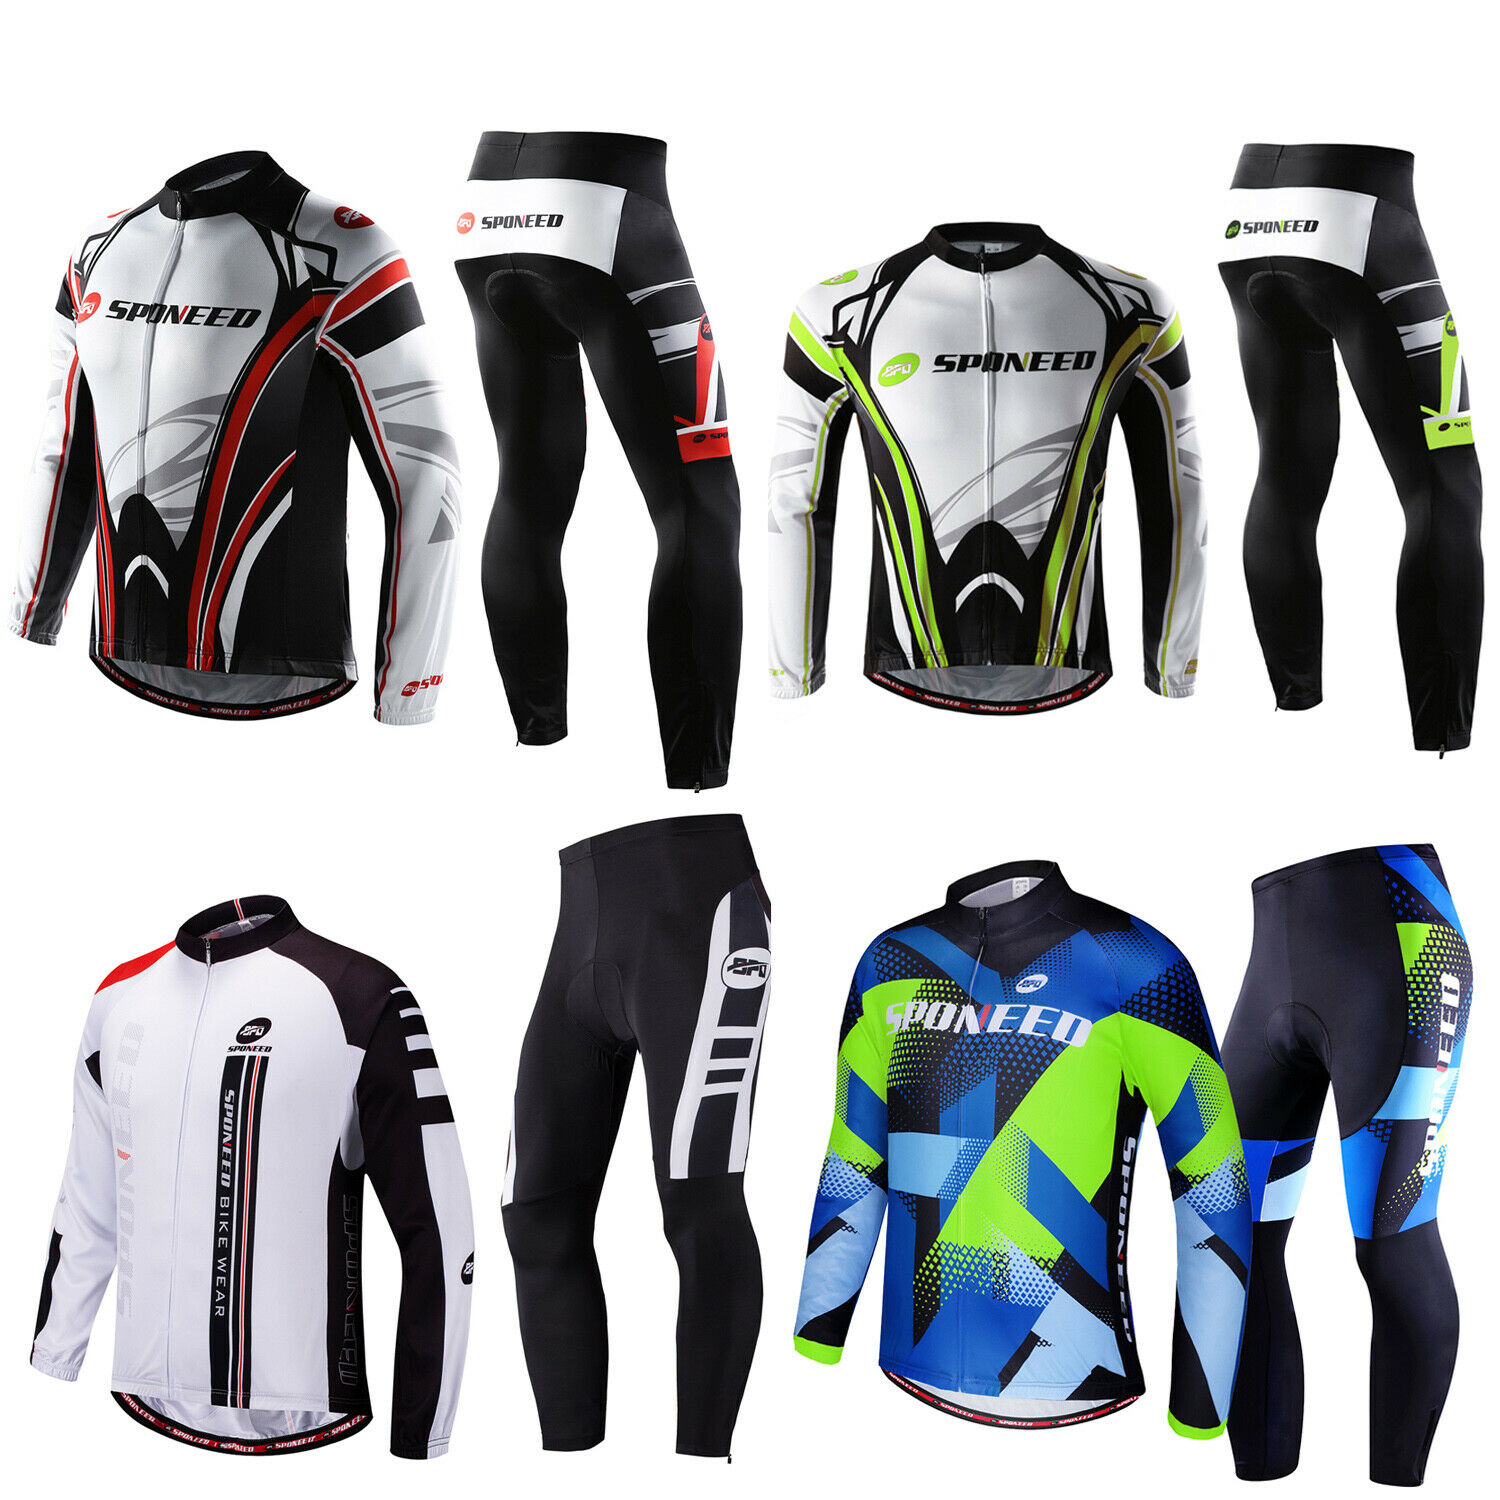 Cycle Jersey Pants Sets Men Bike Shirt Cycling Trousers Padded  Outfits 4 colors  be in great demand